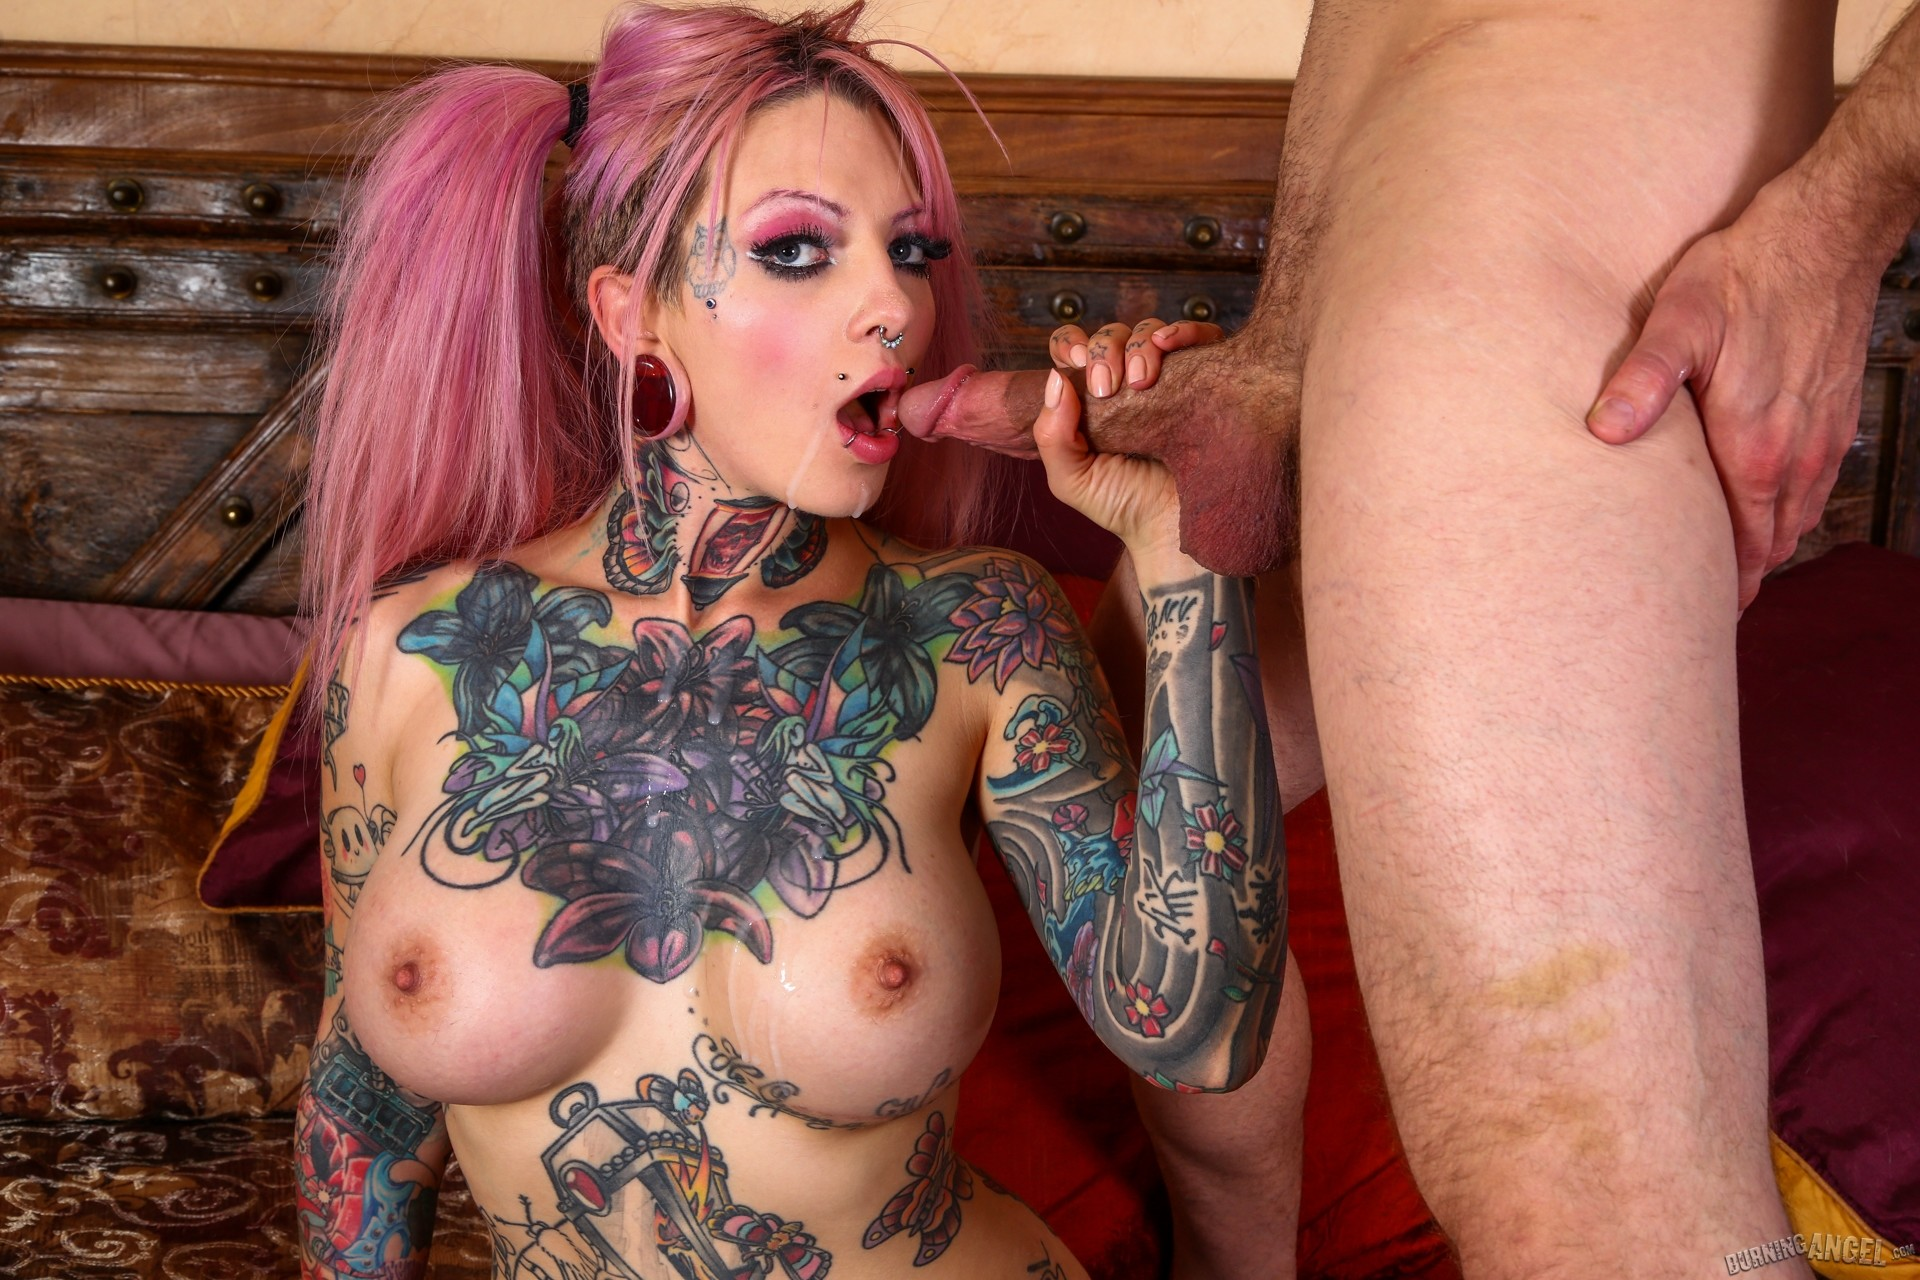 Tattoo porn sex warrior #4